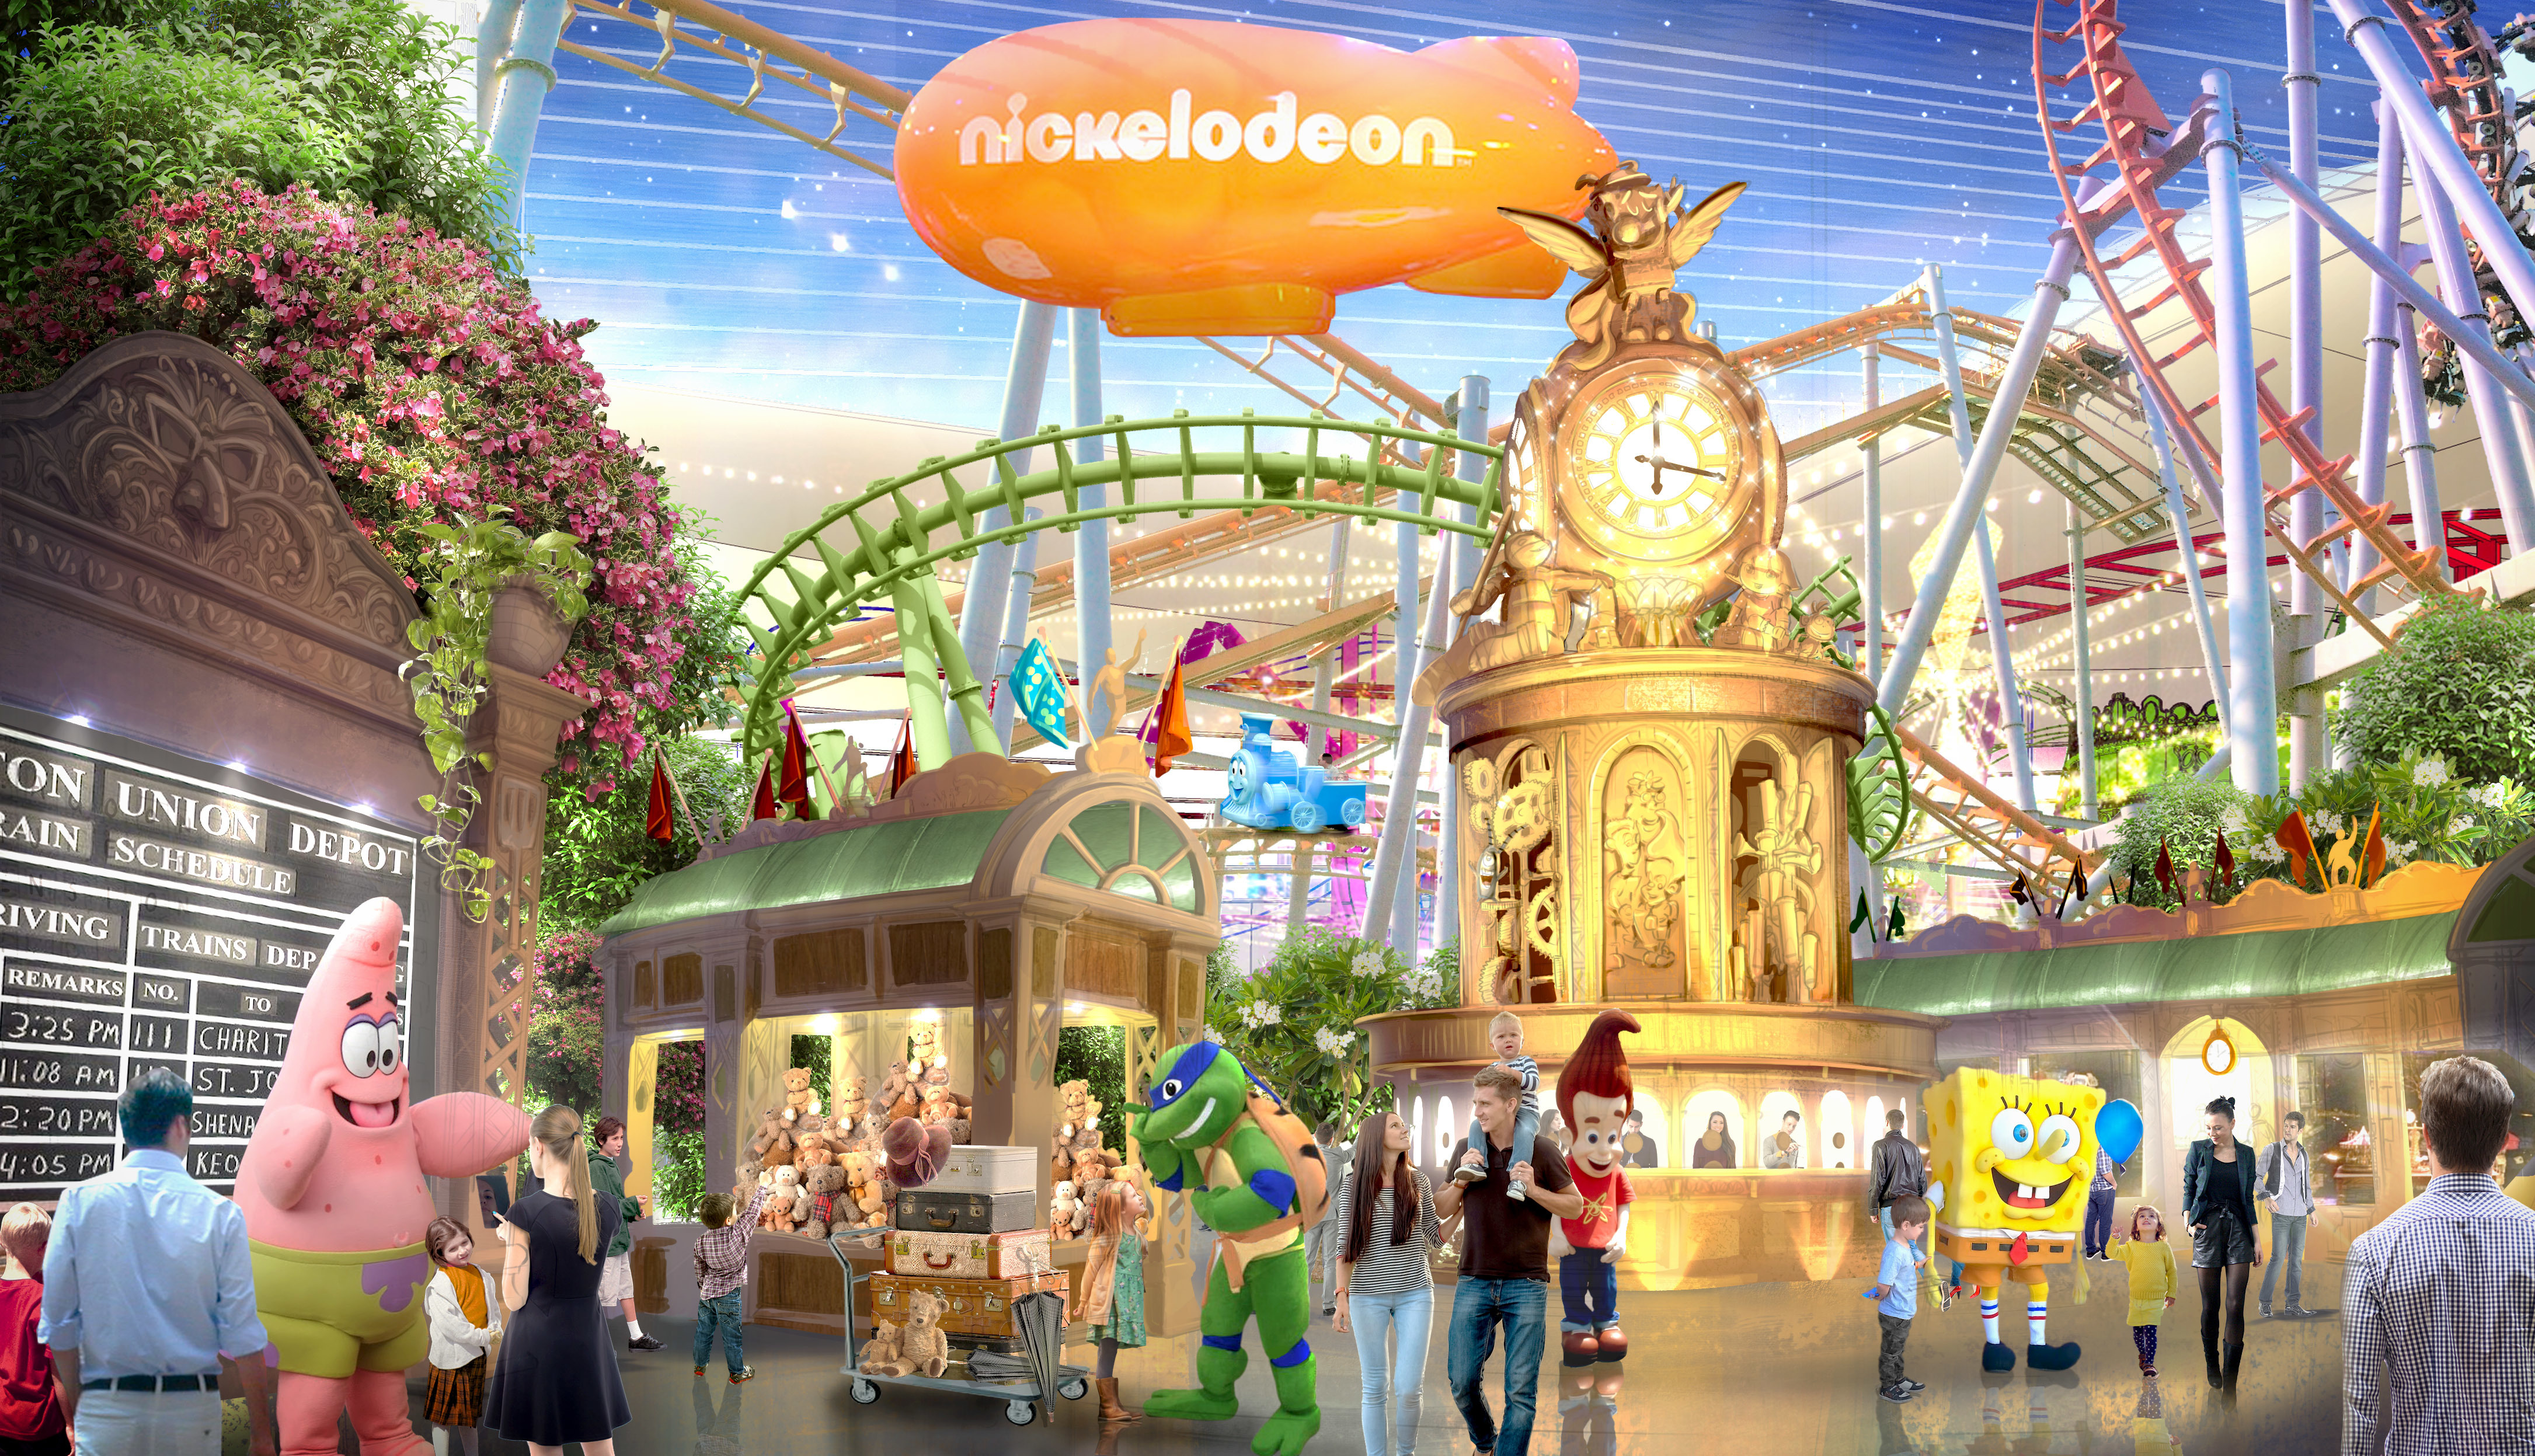 The $5 billion American Dream Mall represents the next wave of Super Malls that look more like amusement parks than shopping centers. Here one of its premiere draws will be the Nickelodeon Center for families and kids.